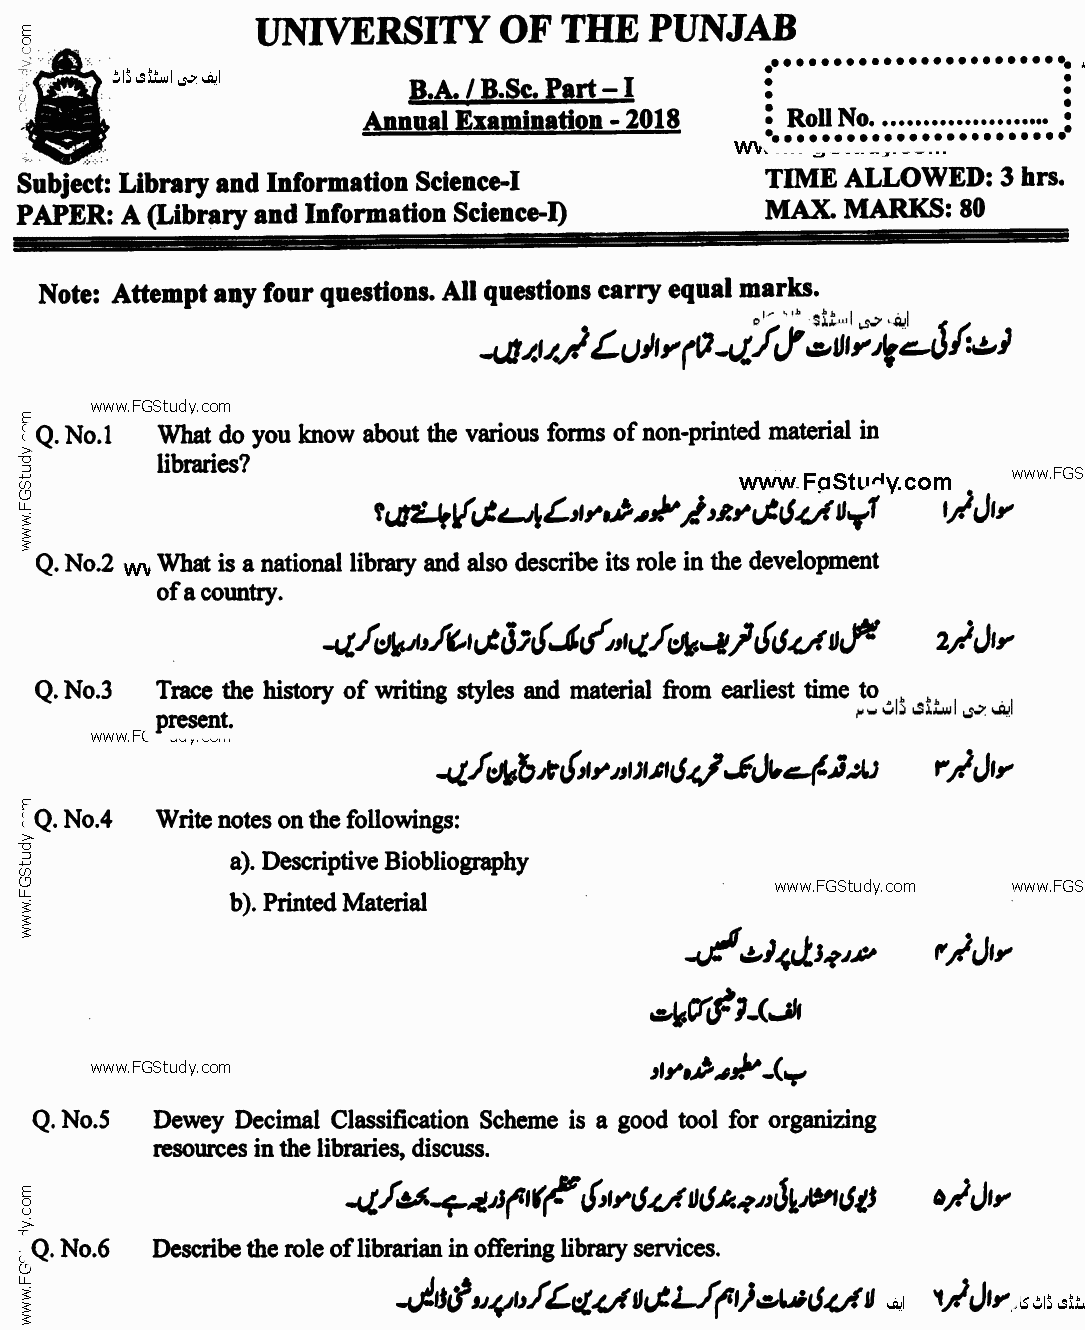 Library And Information Science Paper A BA Part 1 Past Papers 2018